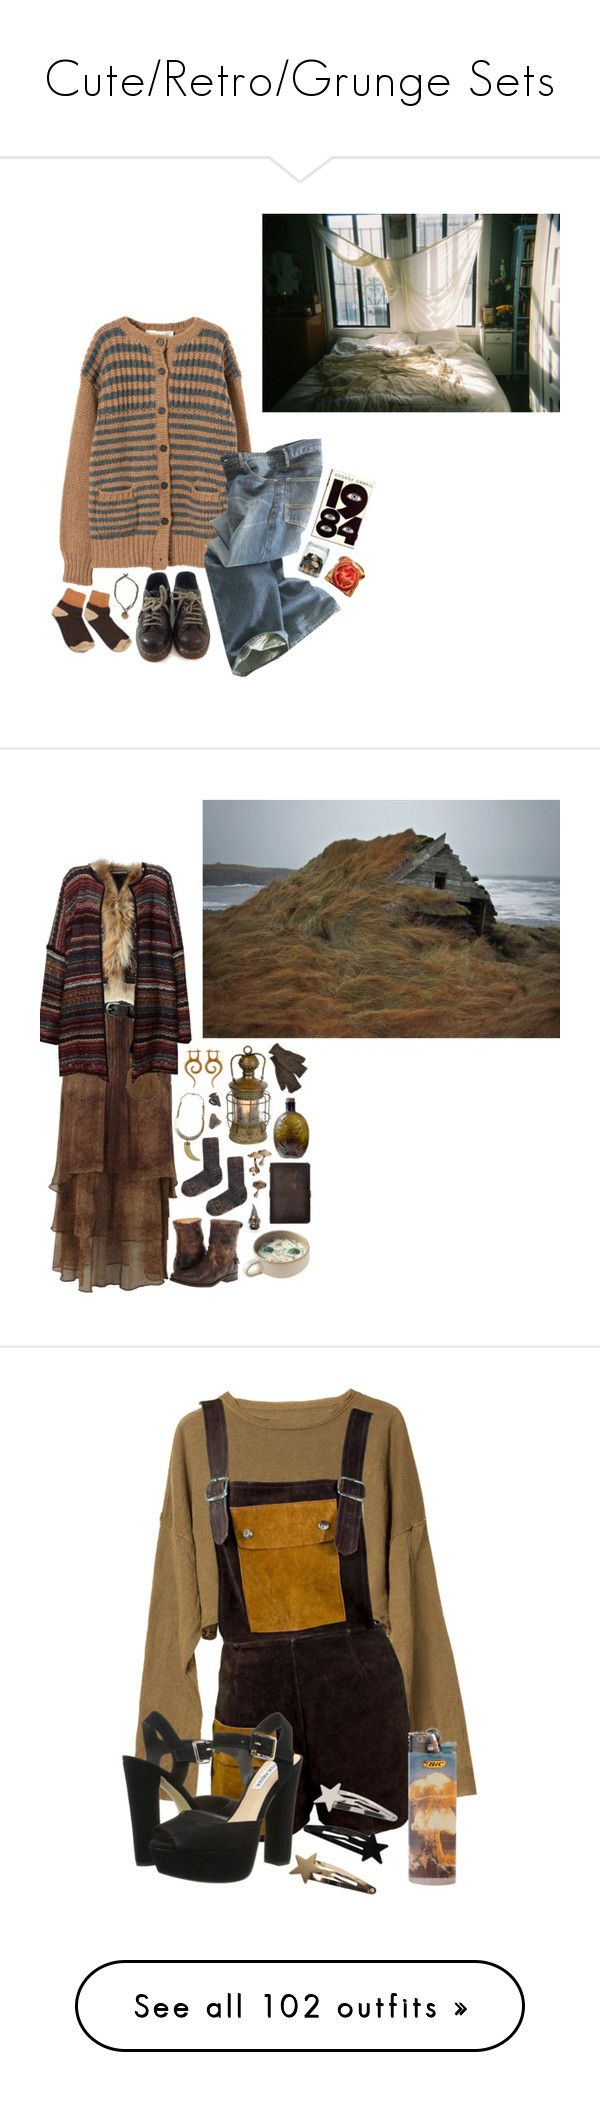 """""""Cute/Retro/Grunge Sets"""" by given-to-fly ❤ liked on Polyvore featuring Marni, Polo Ralph Lauren, Dr. Martens, ORWELL, Jean-Paul Gaultier, SuperTrash, ASOS, Inverni, Antik Batik and Leon & Harper"""